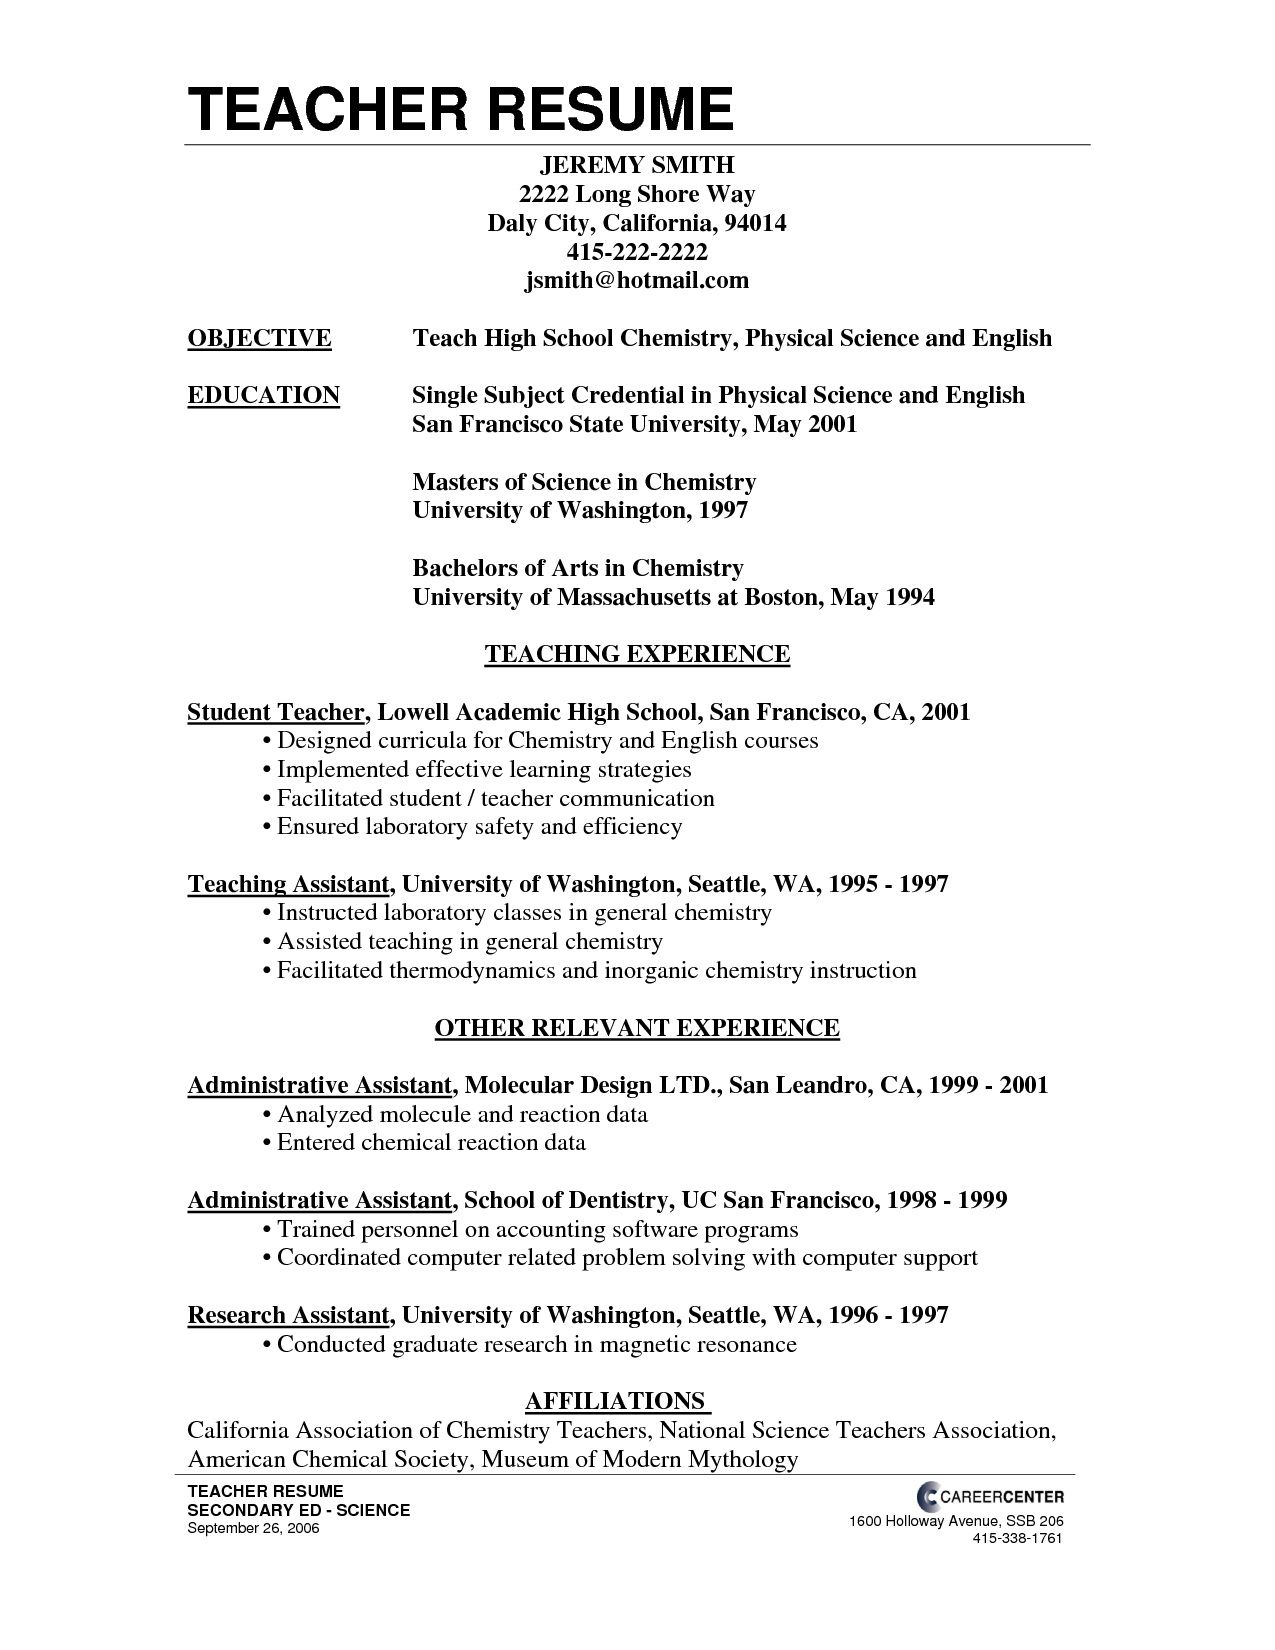 Sample Teacher Resume Templates High School Teacher Resume Http Jobresumesample